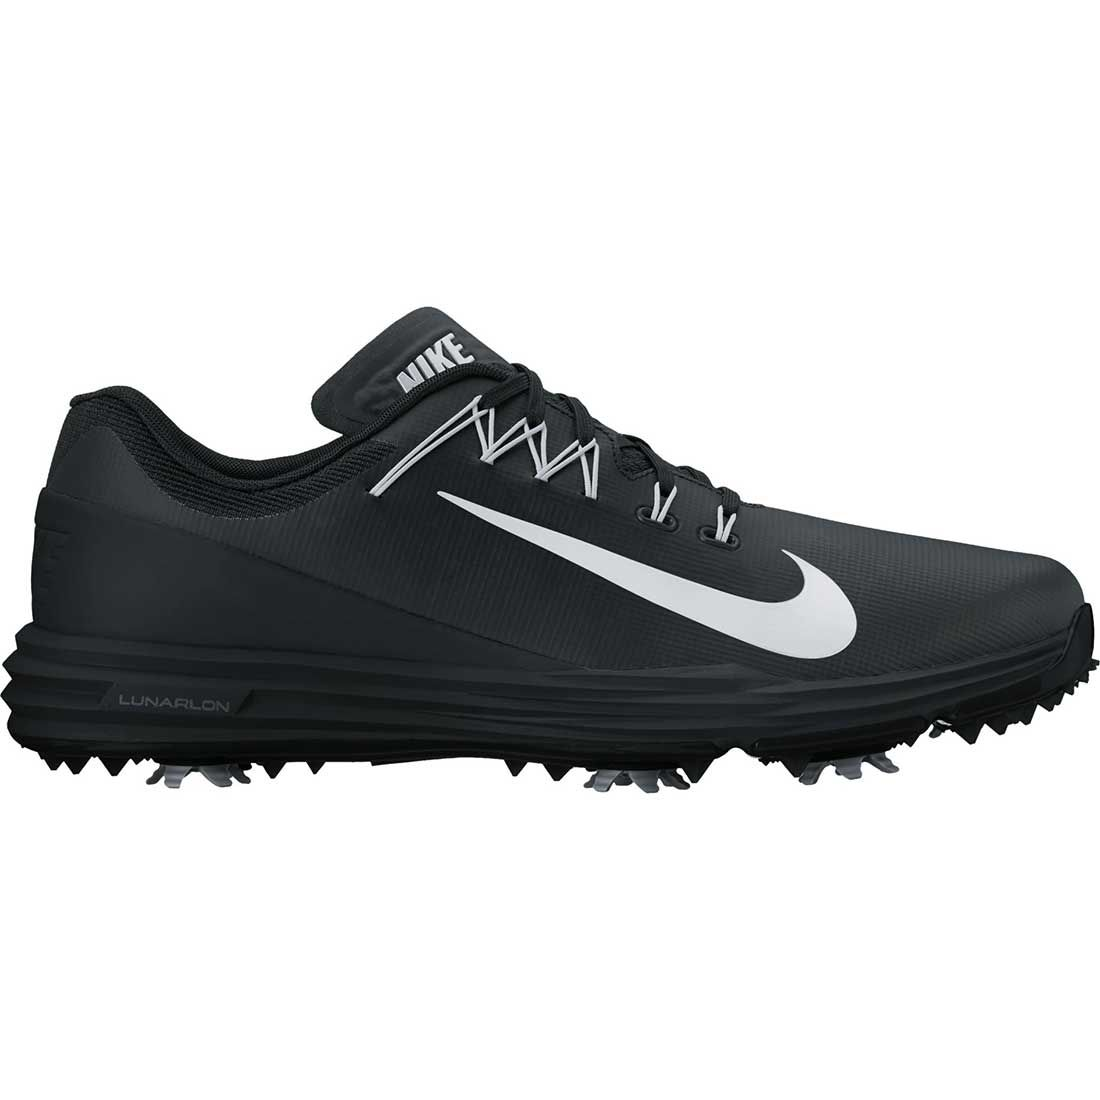 Buy Nike Lunar Command 2 Golf Shoes Black White Golf Discount